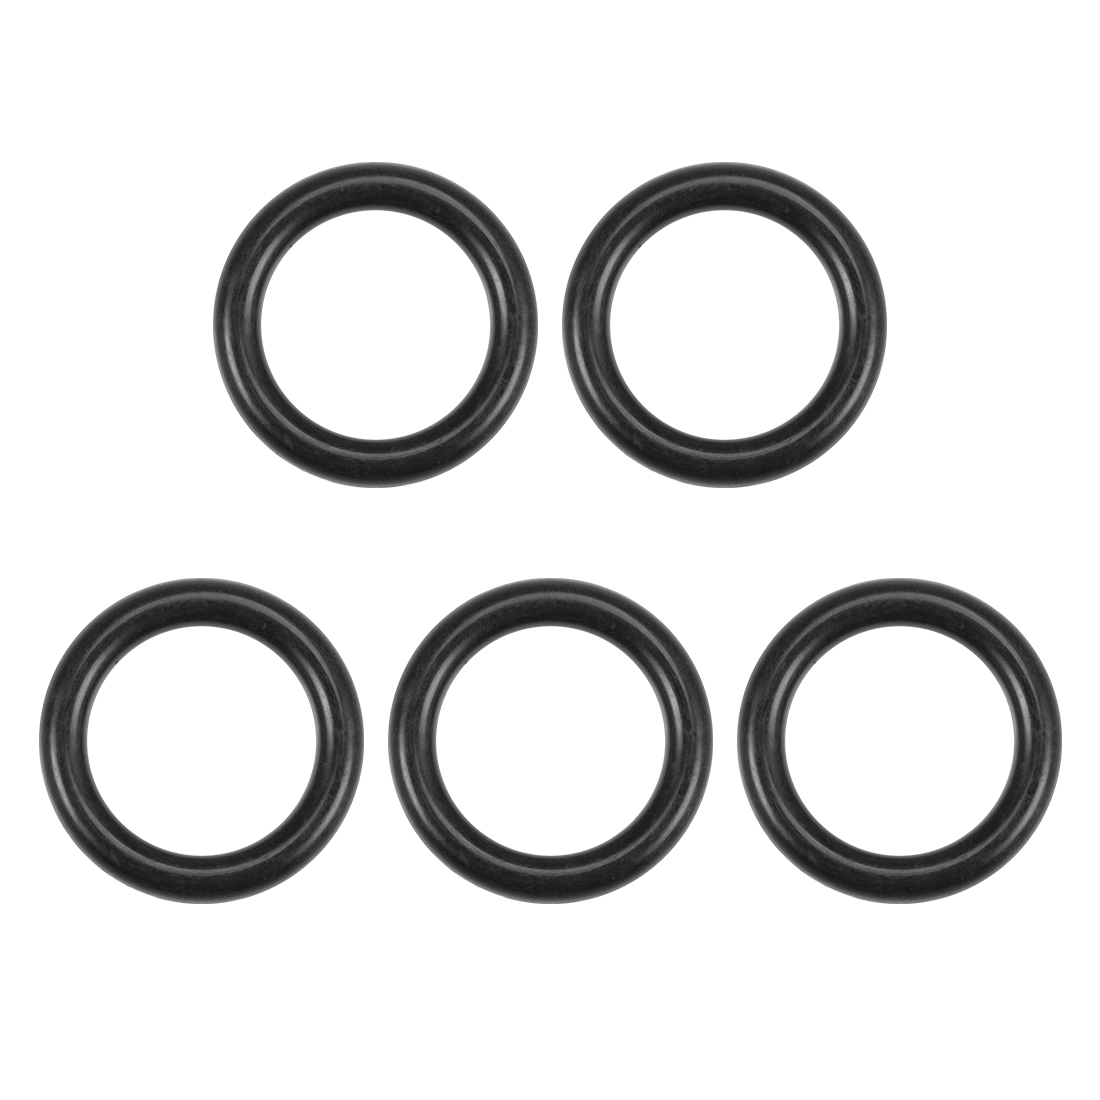 O-Rings Nitrile Rubber 12.5mm x 17.8mm x 2.65mm Round Seal Gasket 5 Pcs